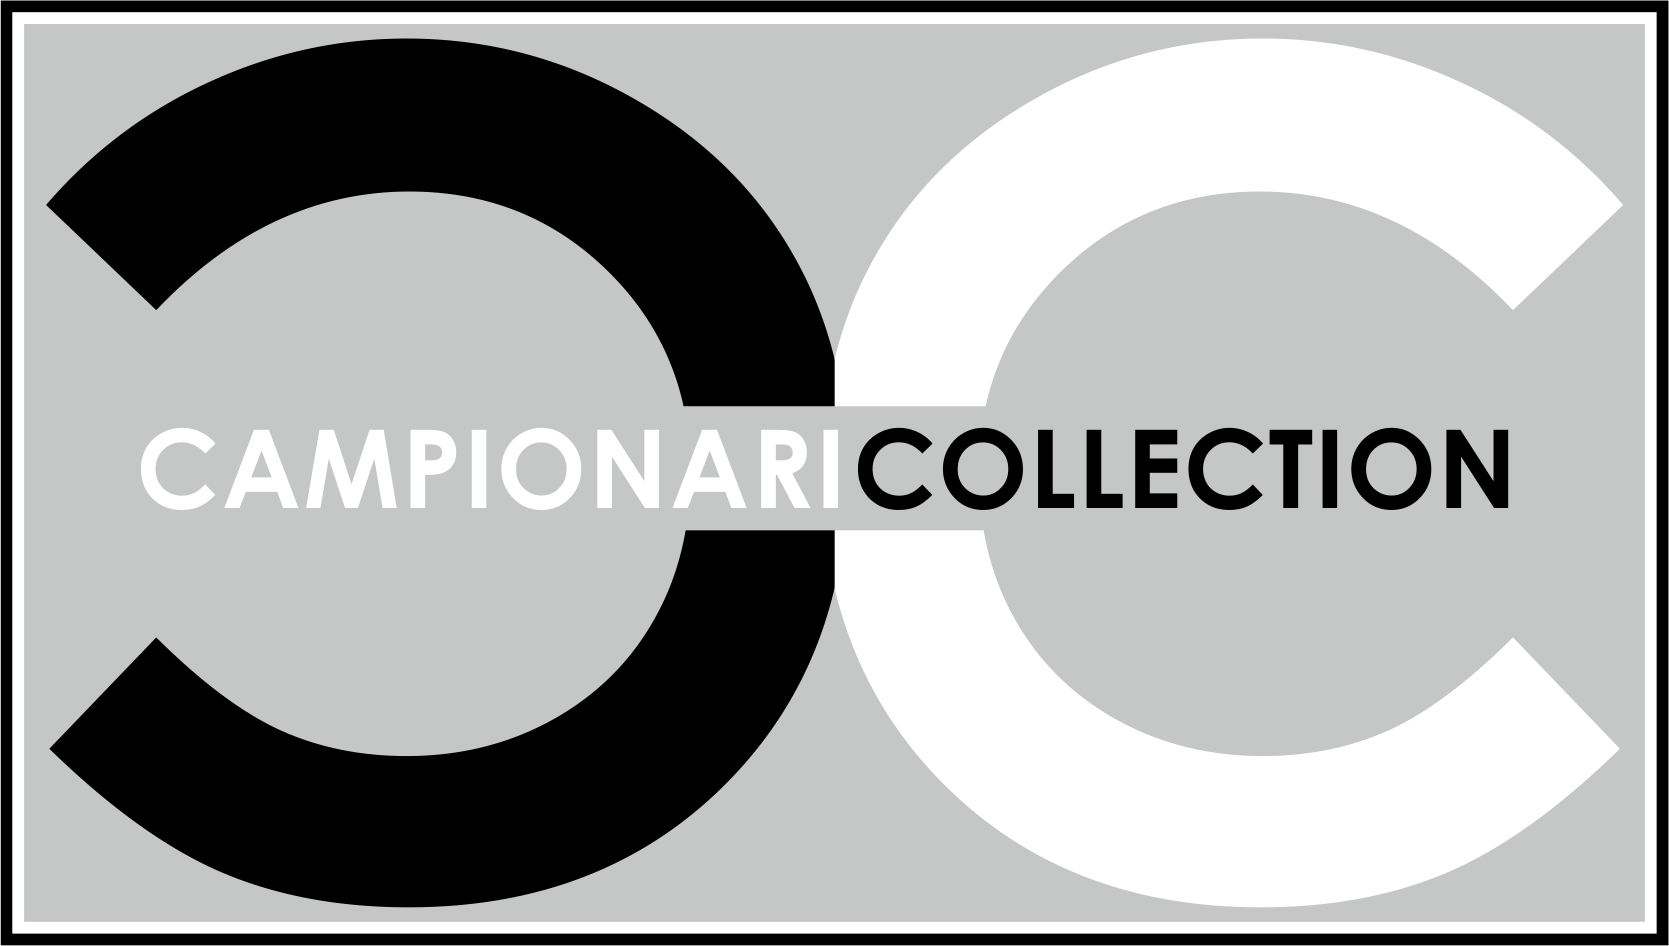 Campionari Collection